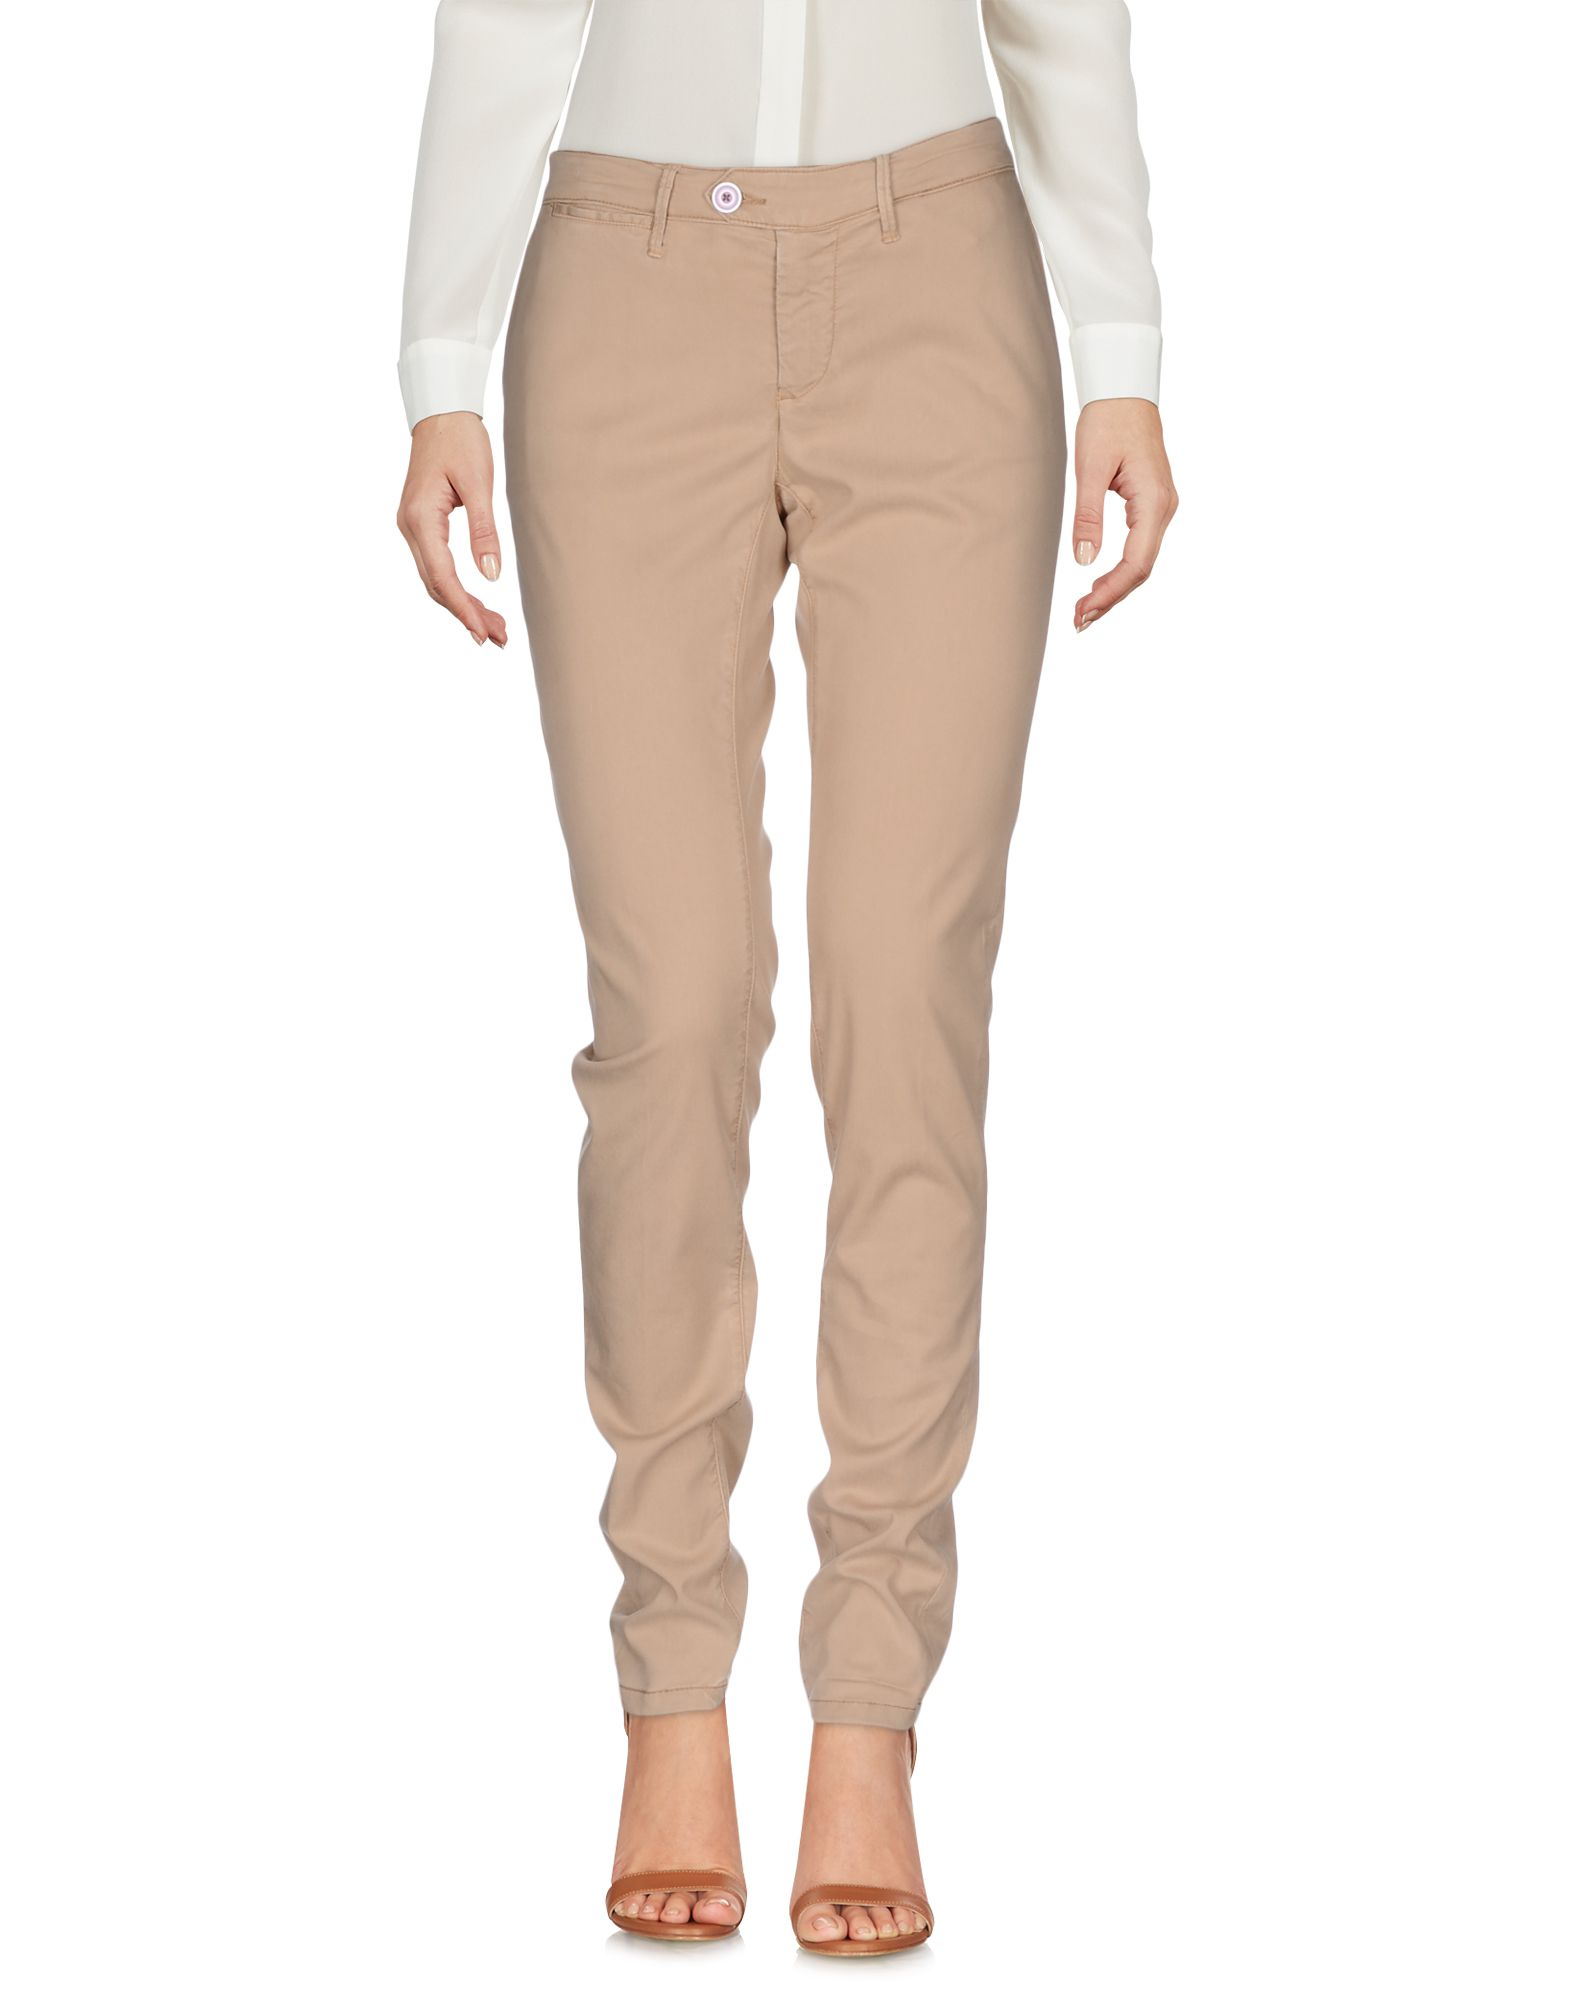 Pantalone Oaks damen - 36938102DO